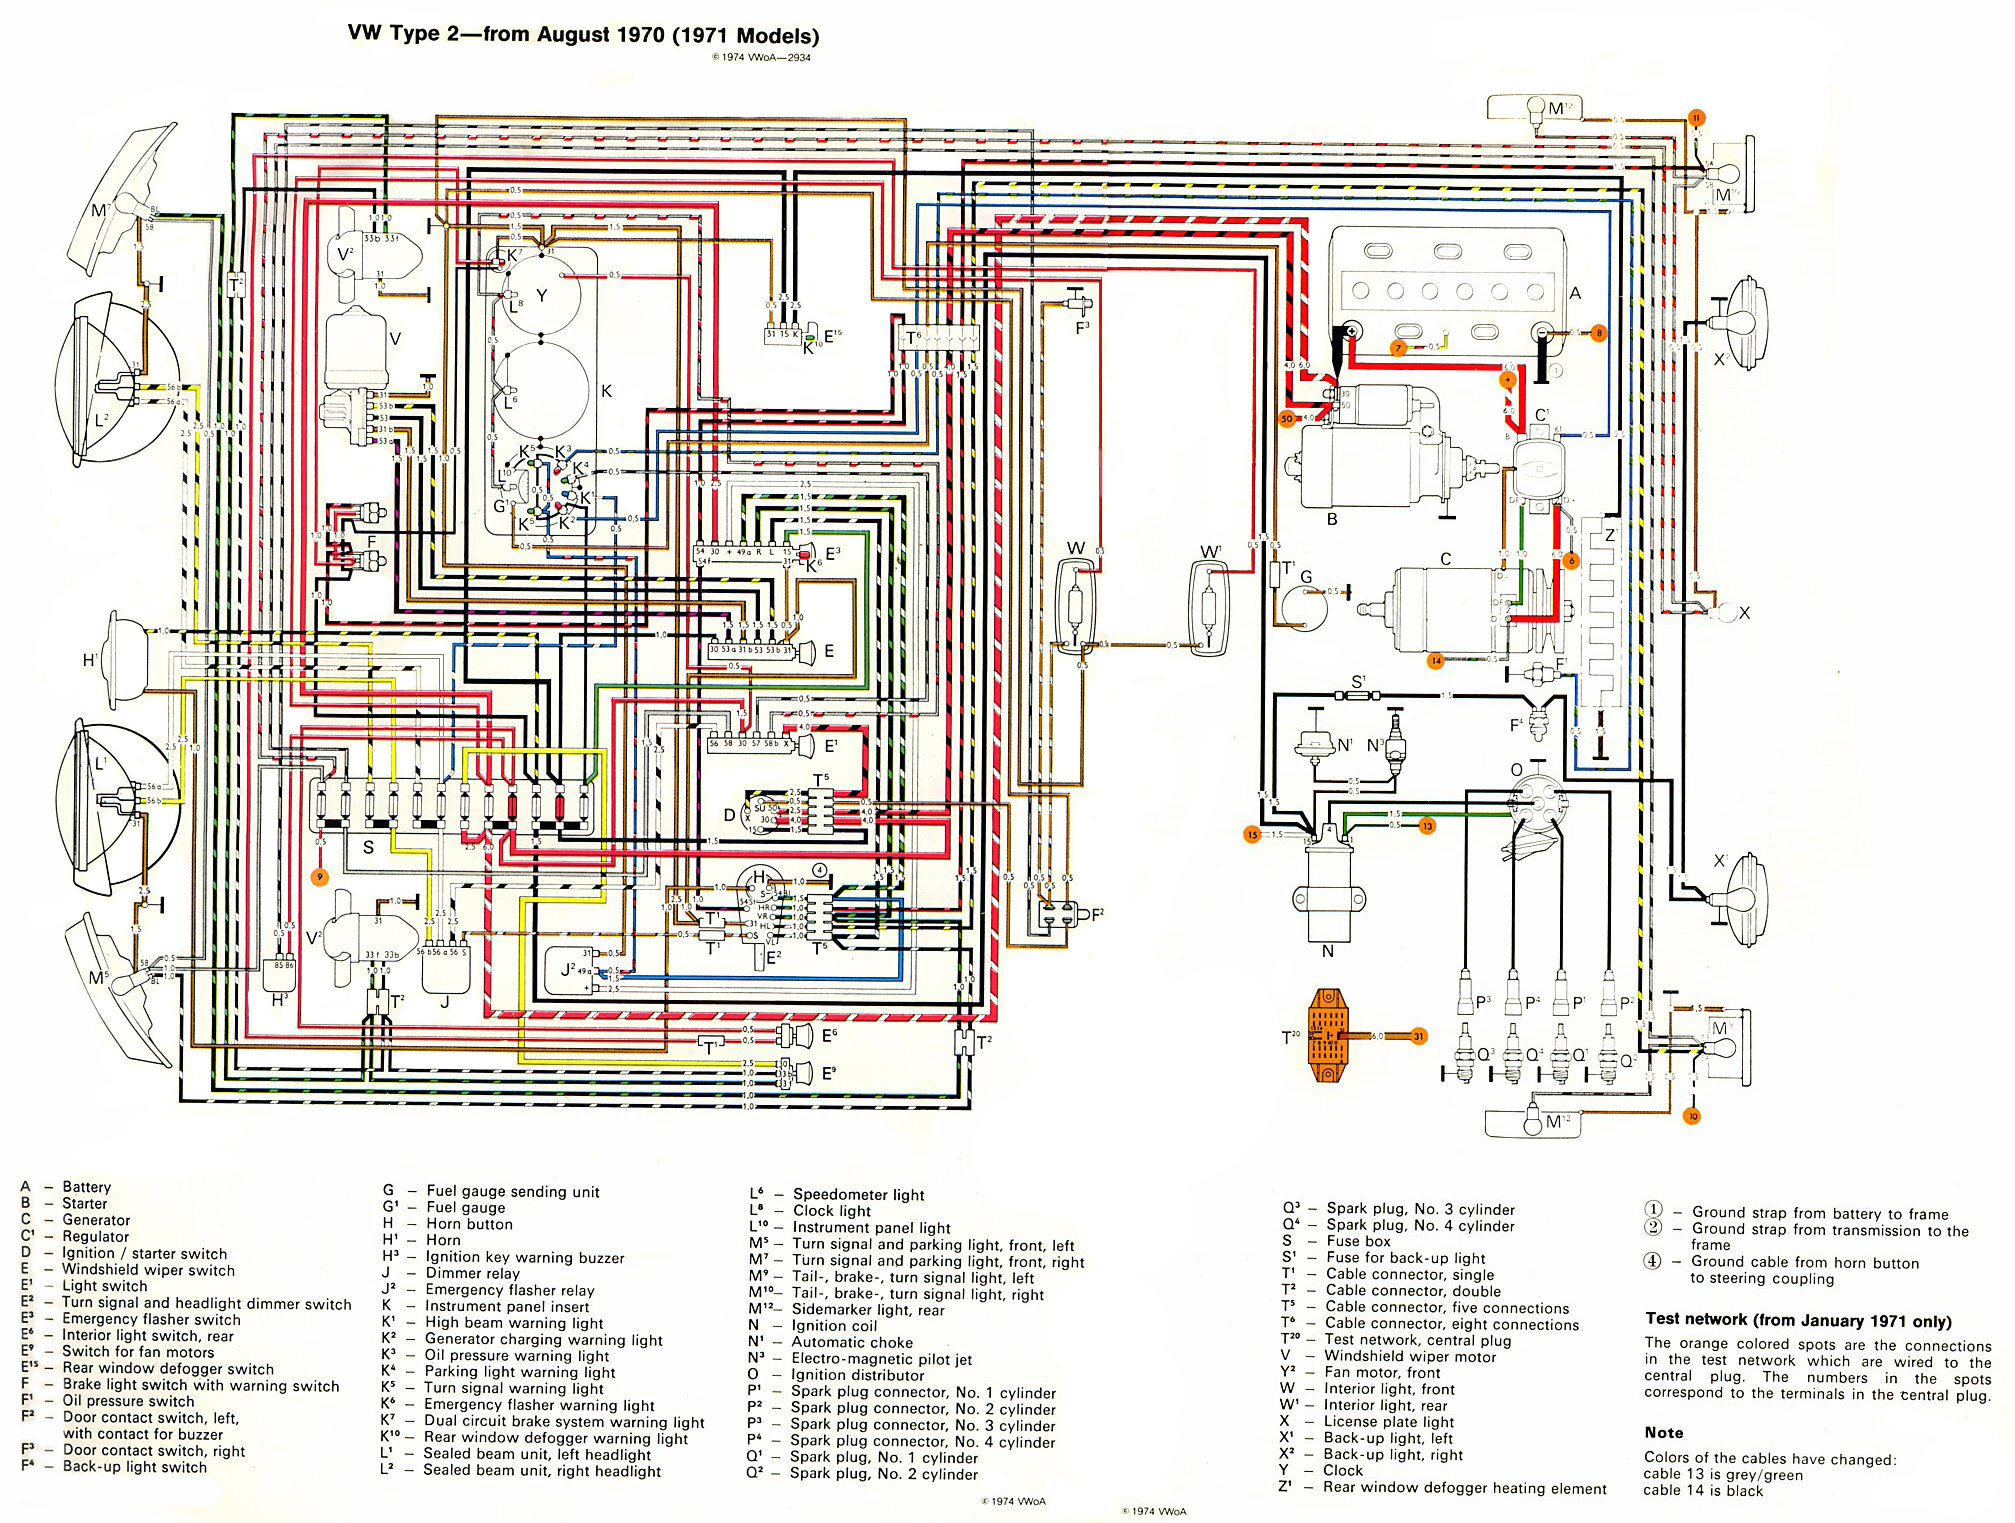 baybus_71_fixed thesamba com type 2 wiring diagrams Electrical Wiring Diagrams at alyssarenee.co